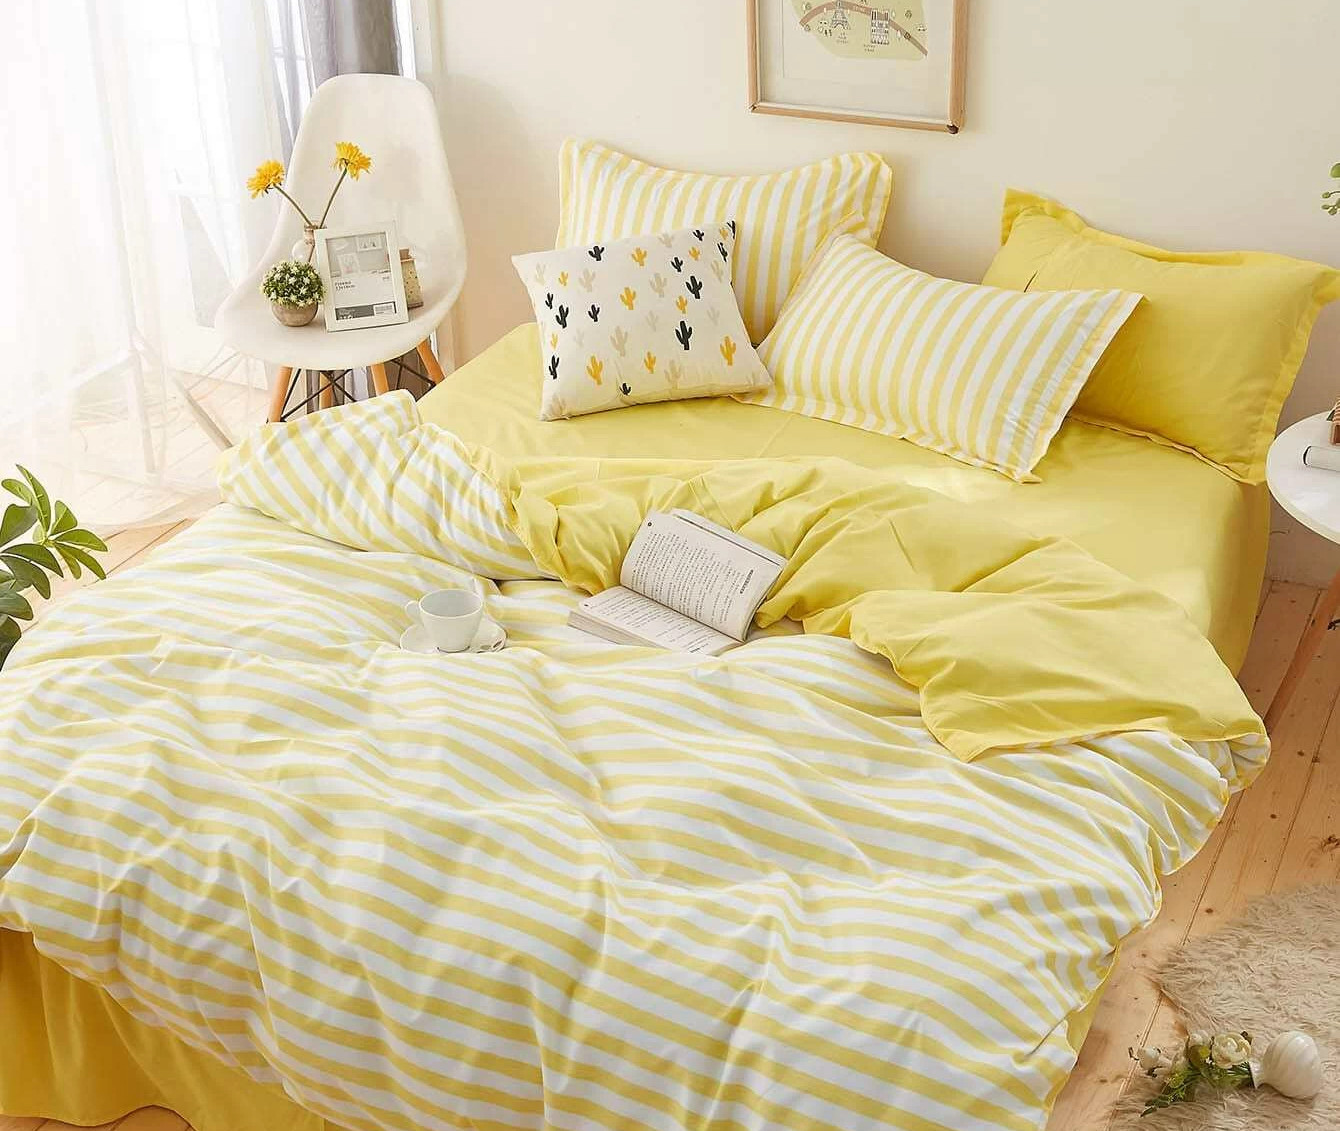 what are the best colors for a bedroom?